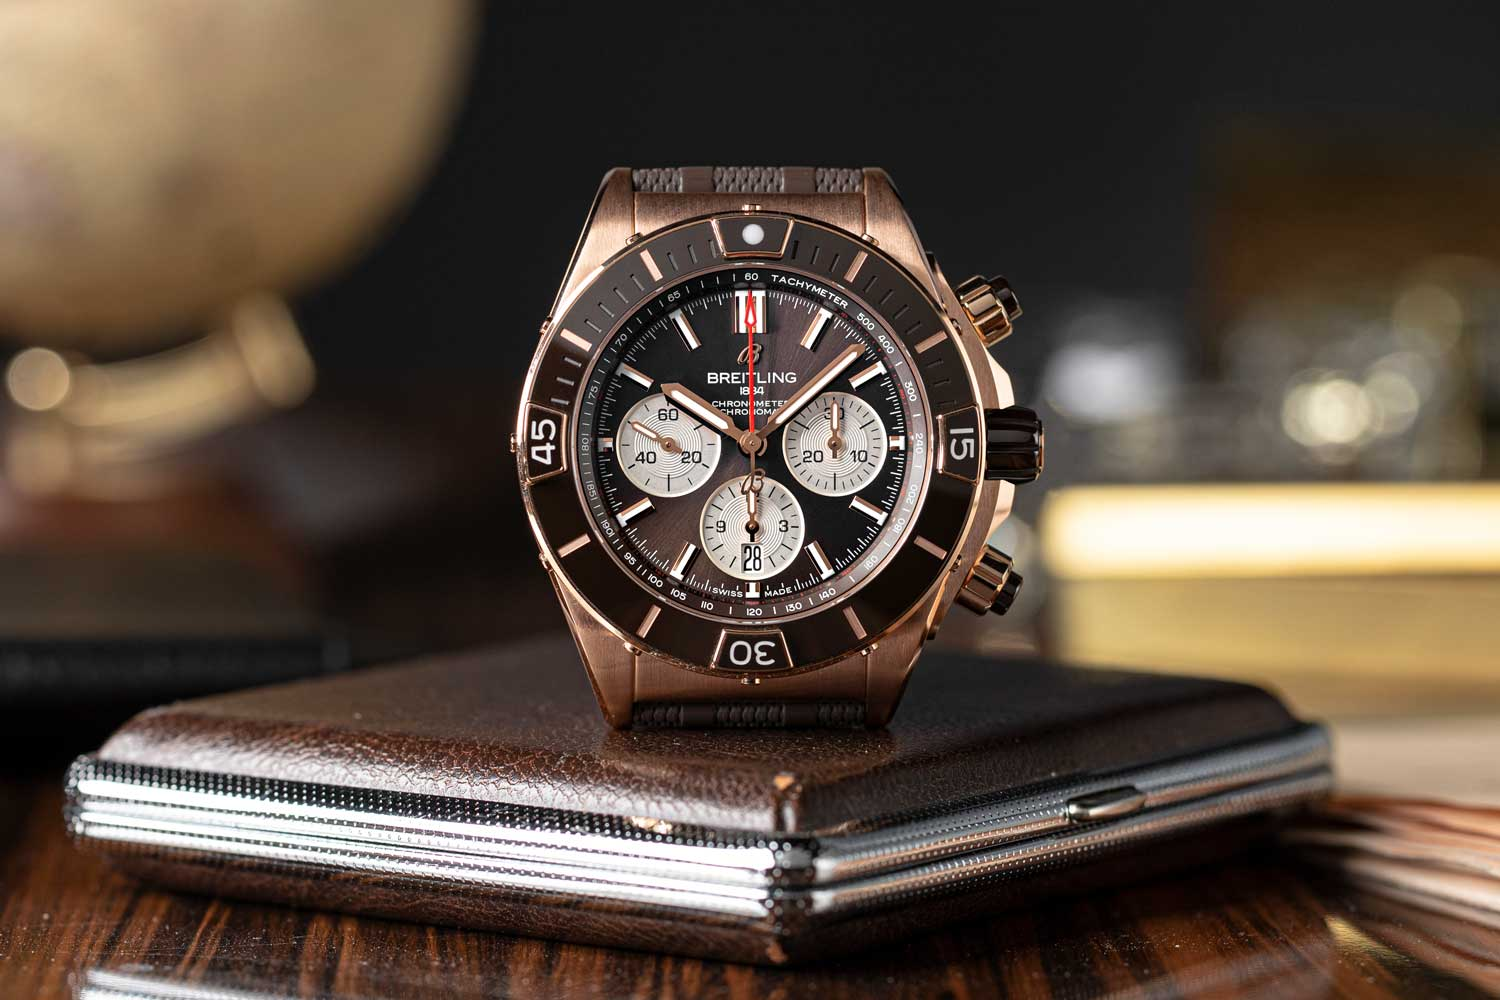 The Super Chronomat B01 44 in 18 k red gold, with brown dial and ceramic bezel insert (©Revolution)